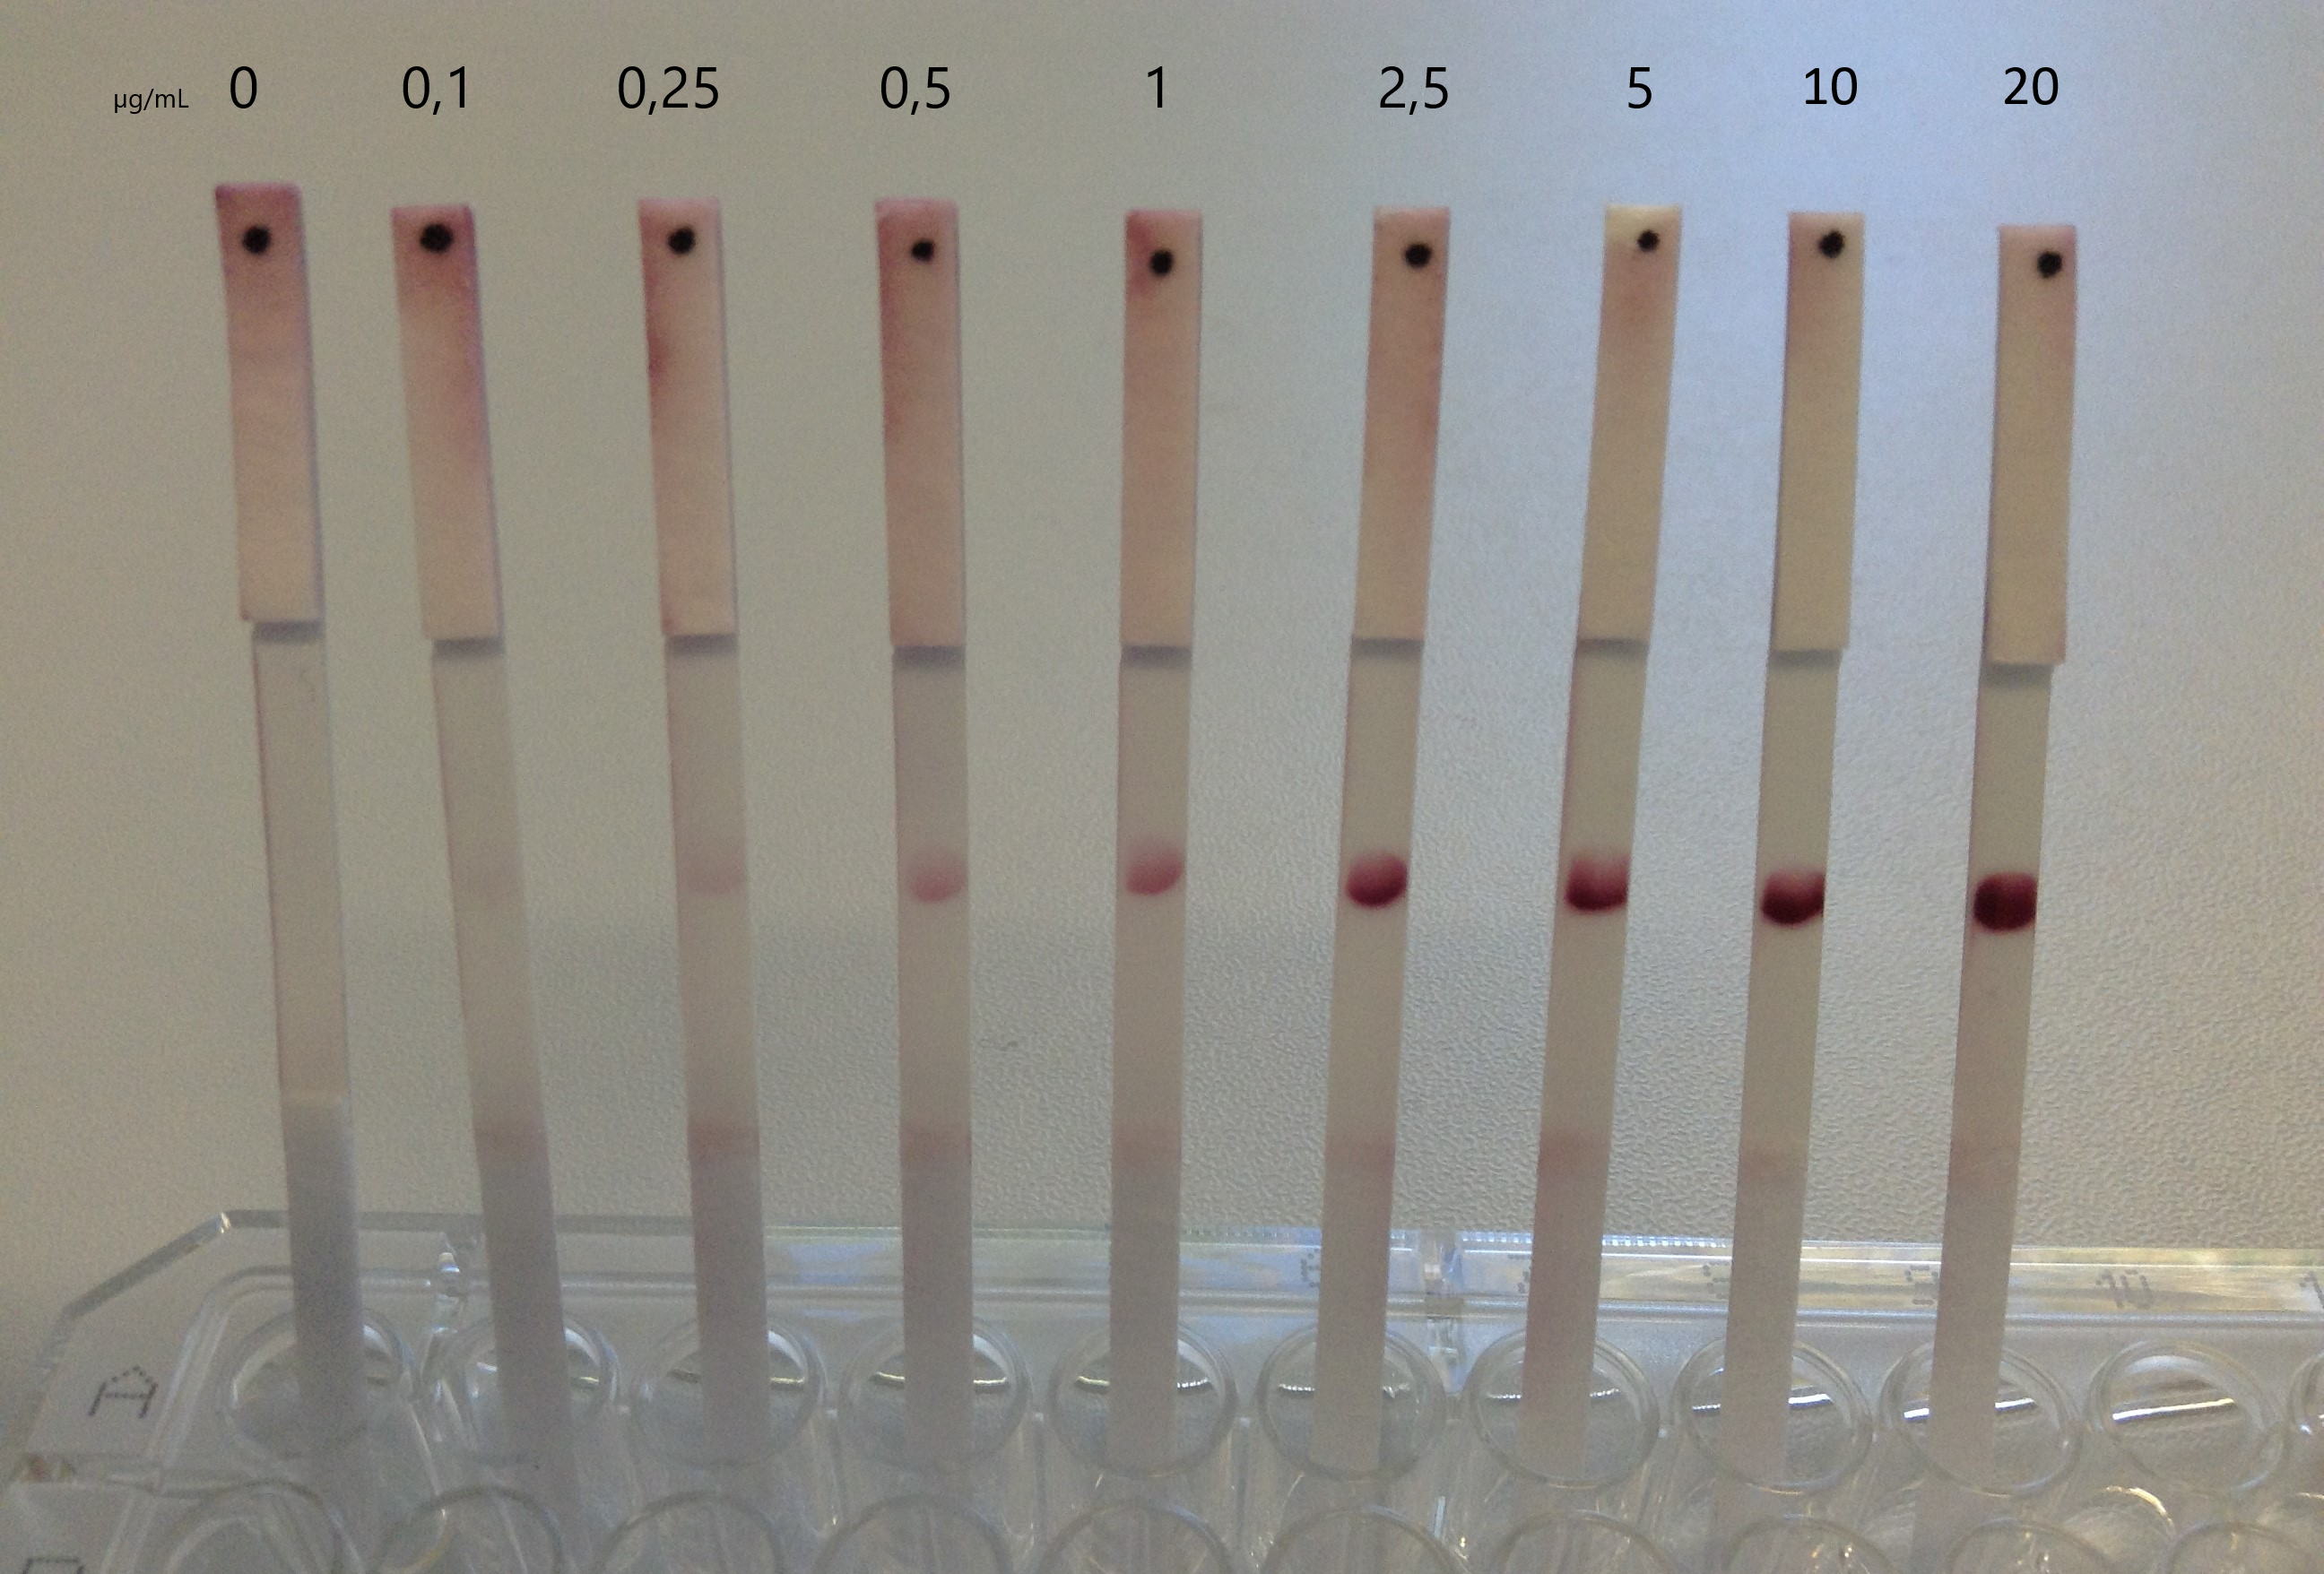 Detection of a HA-Tag specific antibody at several antibody concentrations